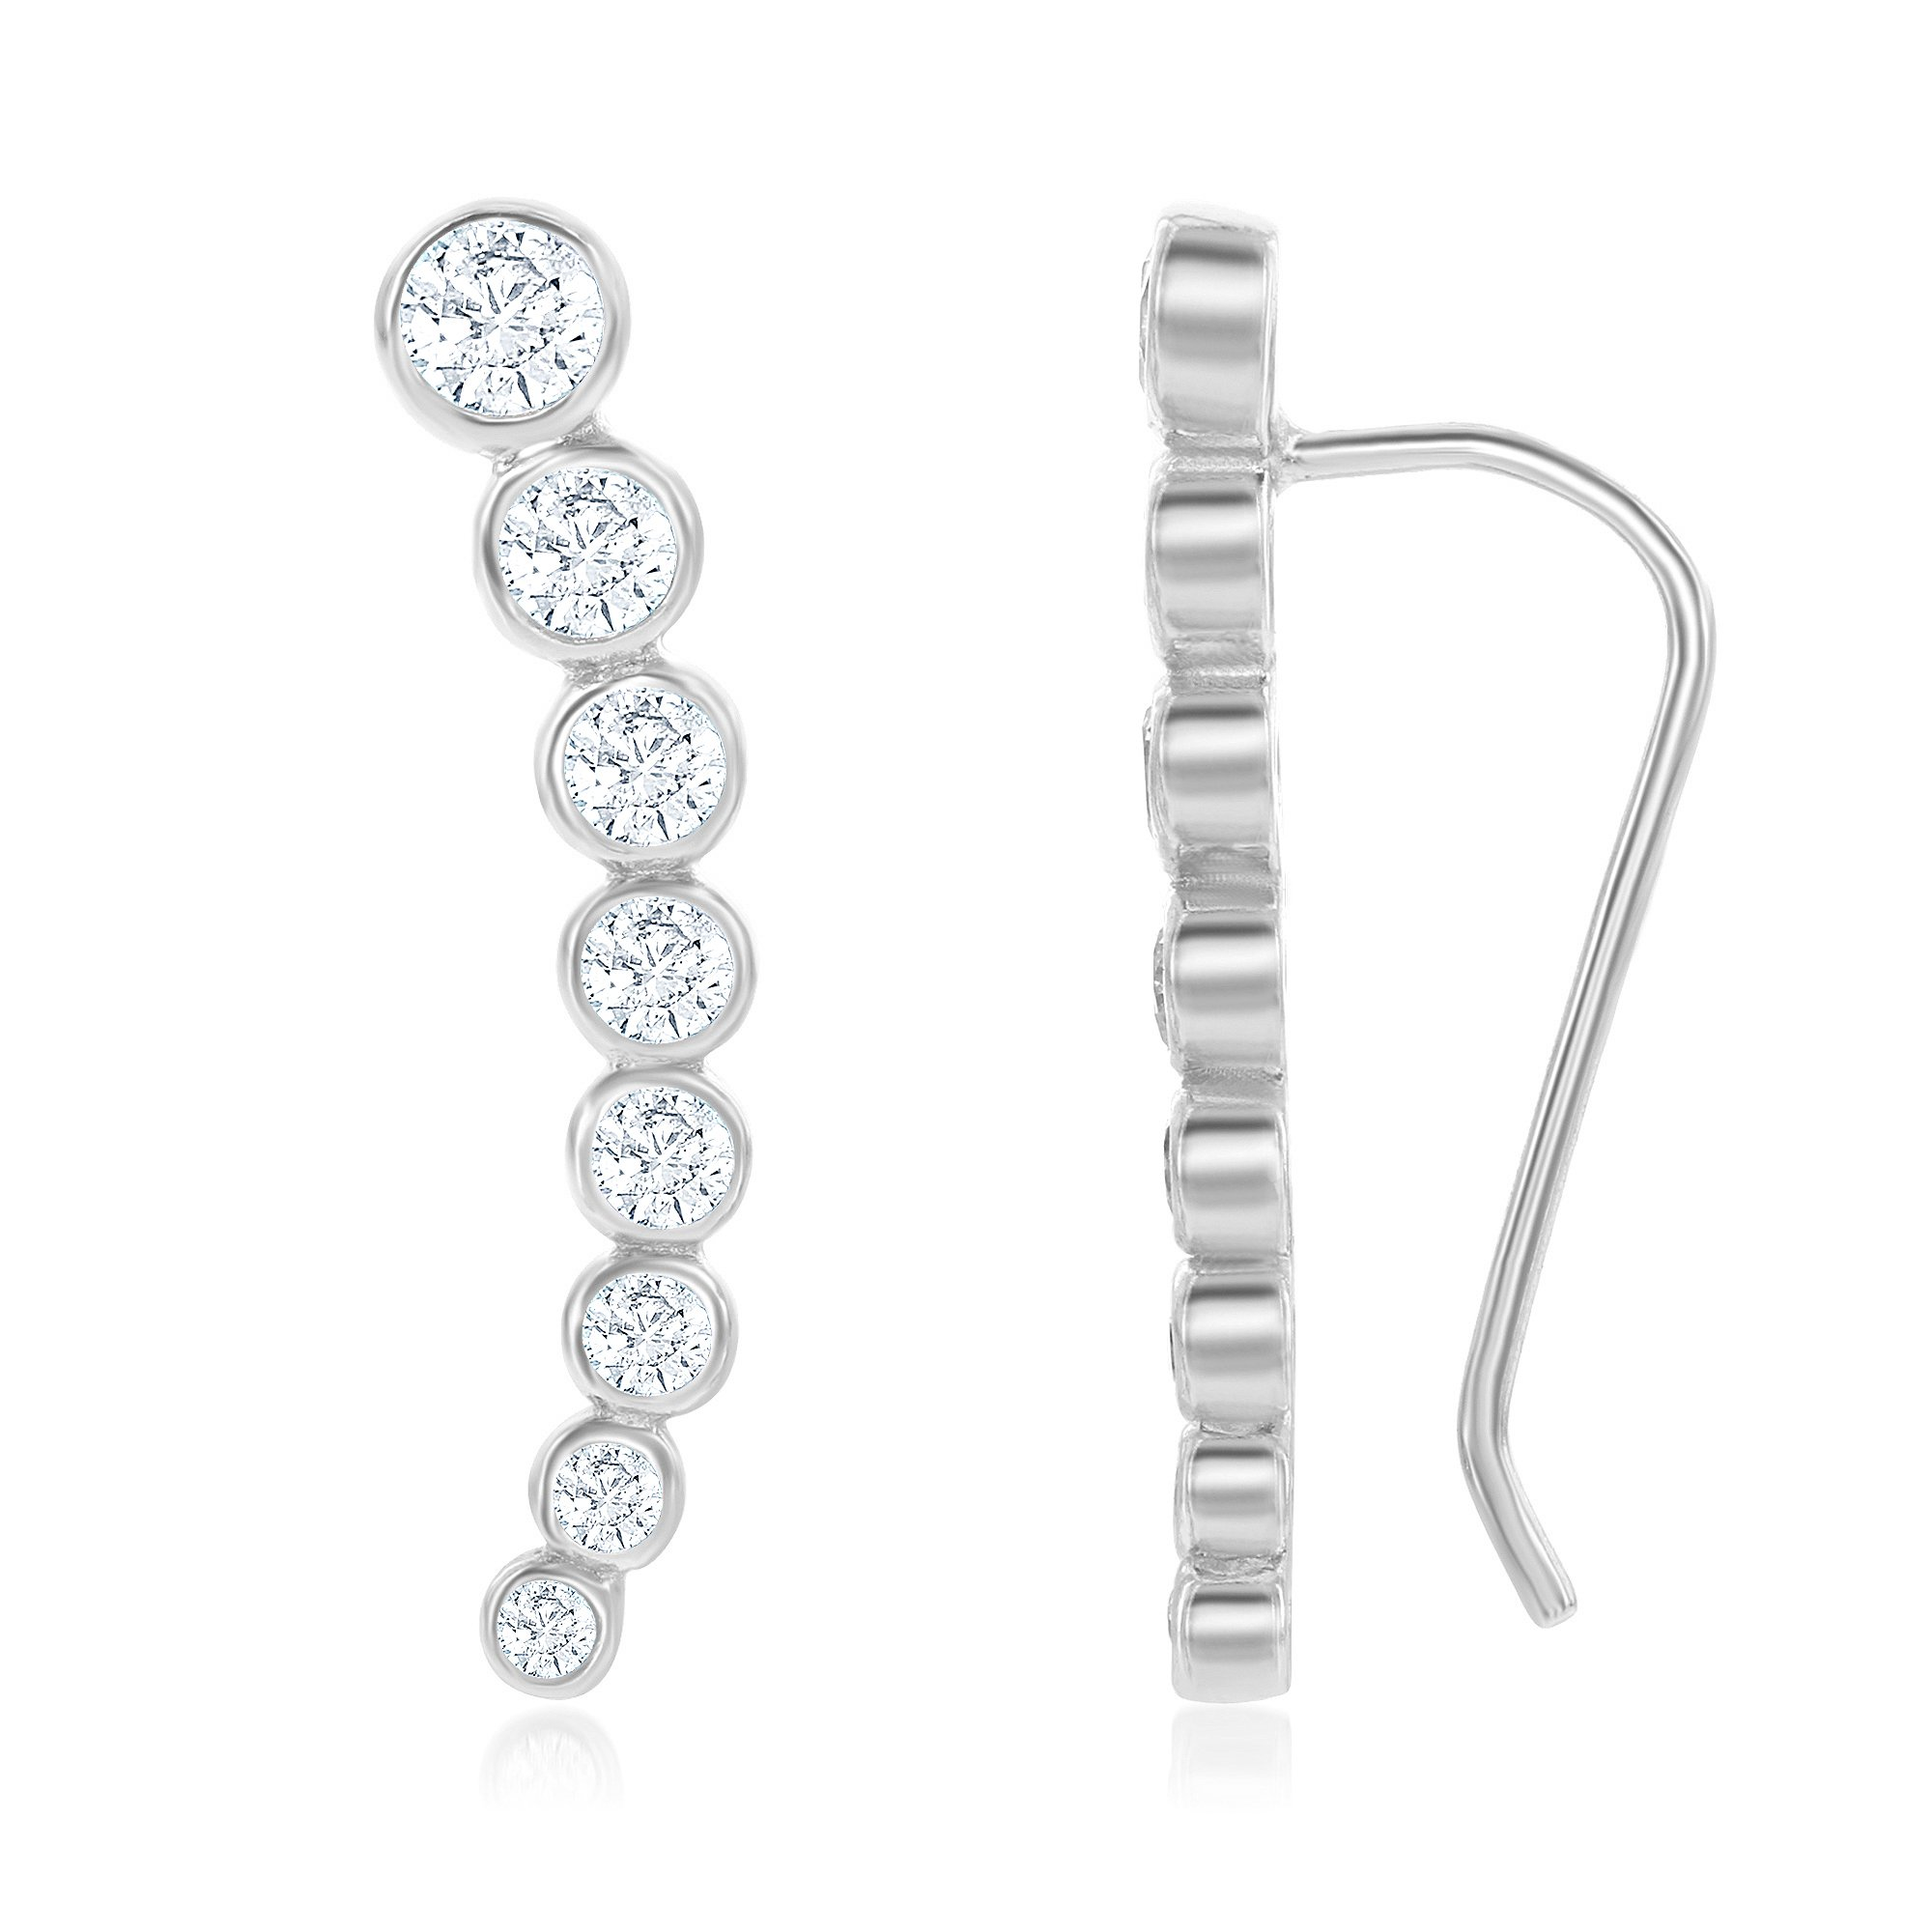 Sterling Silver 925 Bezel-set Zirconia Curved Bar Ear Climber Crawler Cuff Studs Hypoallergenic Earrings